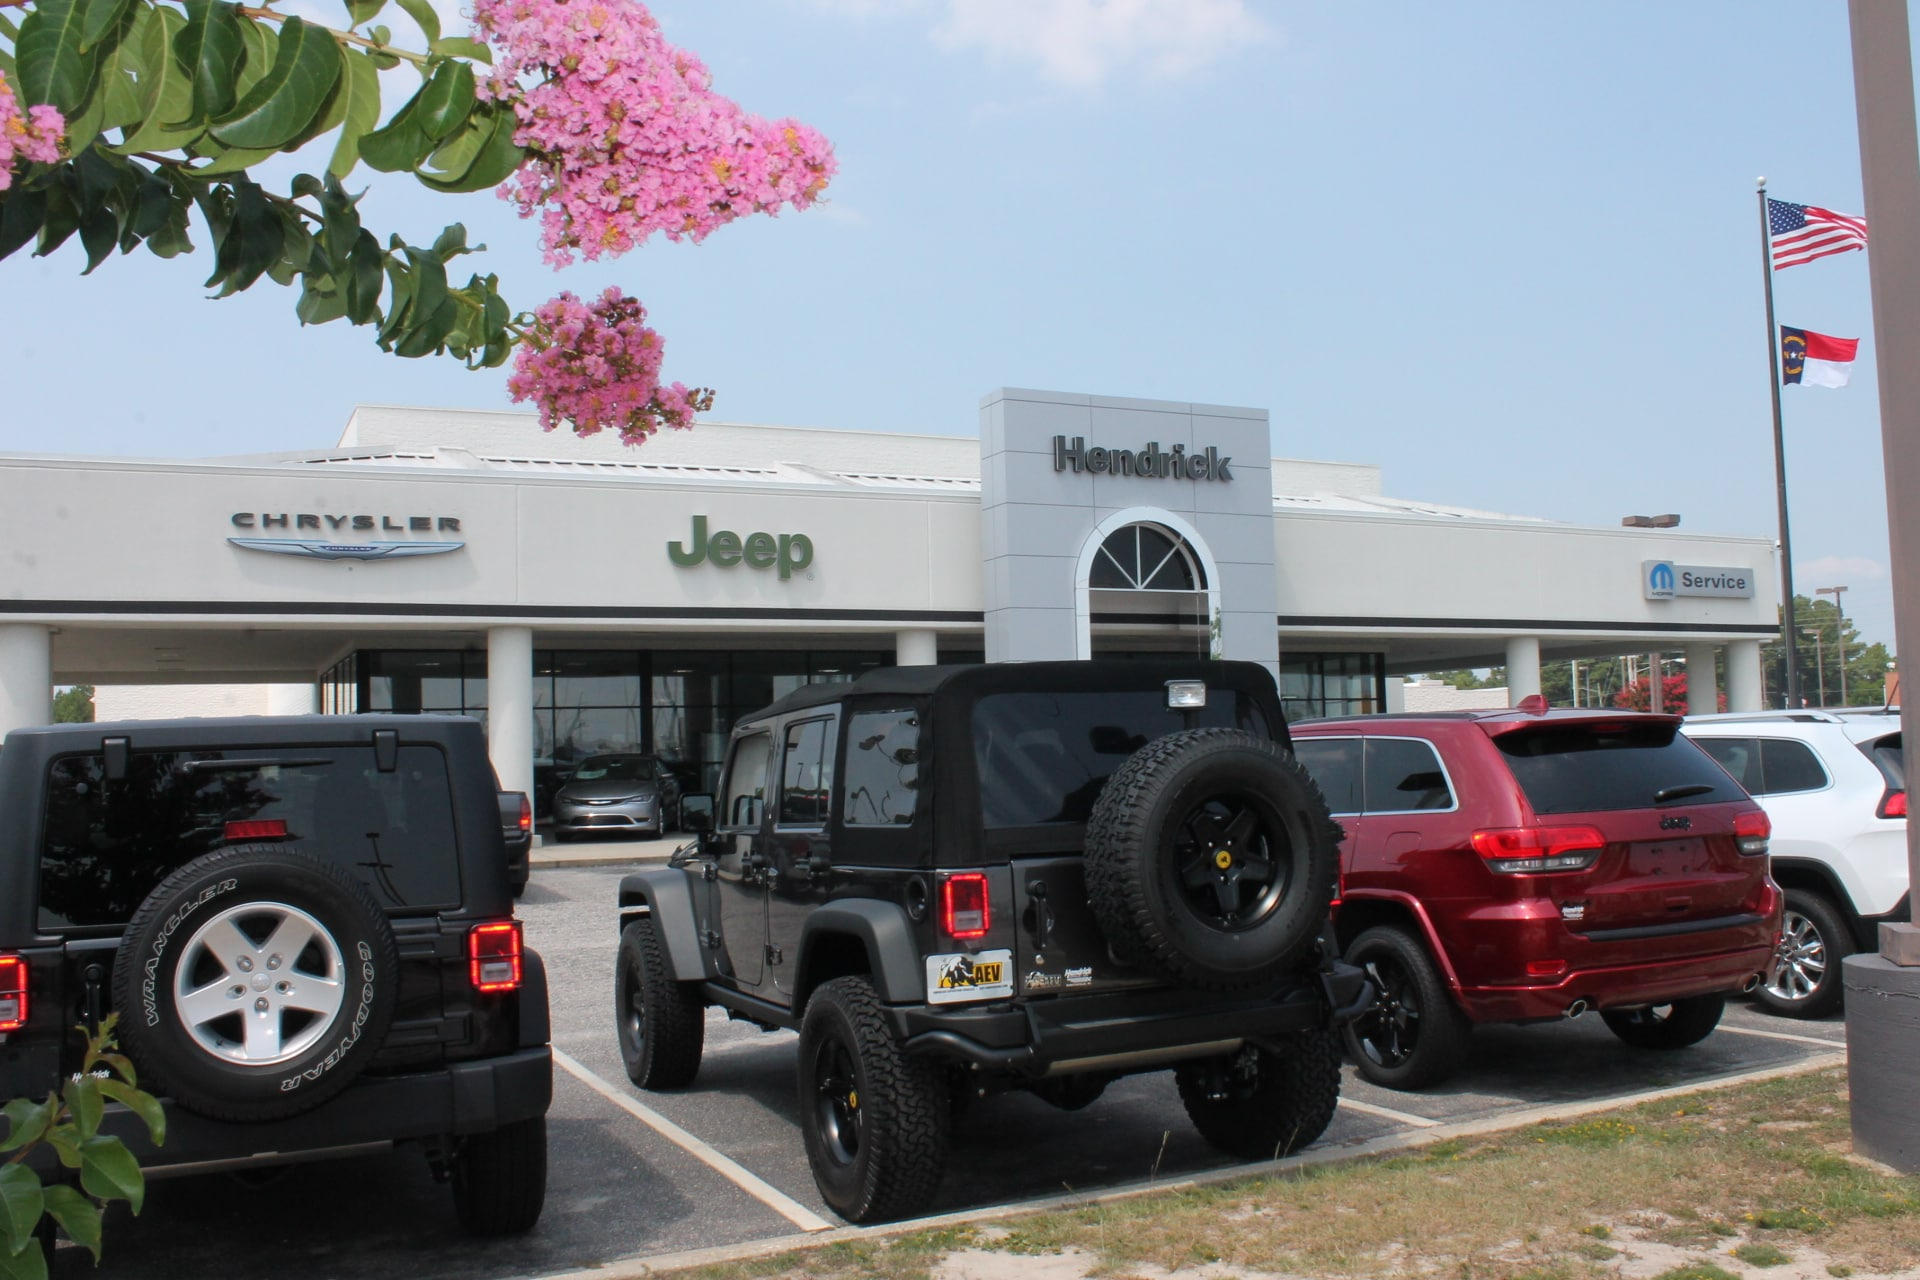 hendrick chrysler jeep vehicles for sale in fayetteville nc 28303. Black Bedroom Furniture Sets. Home Design Ideas